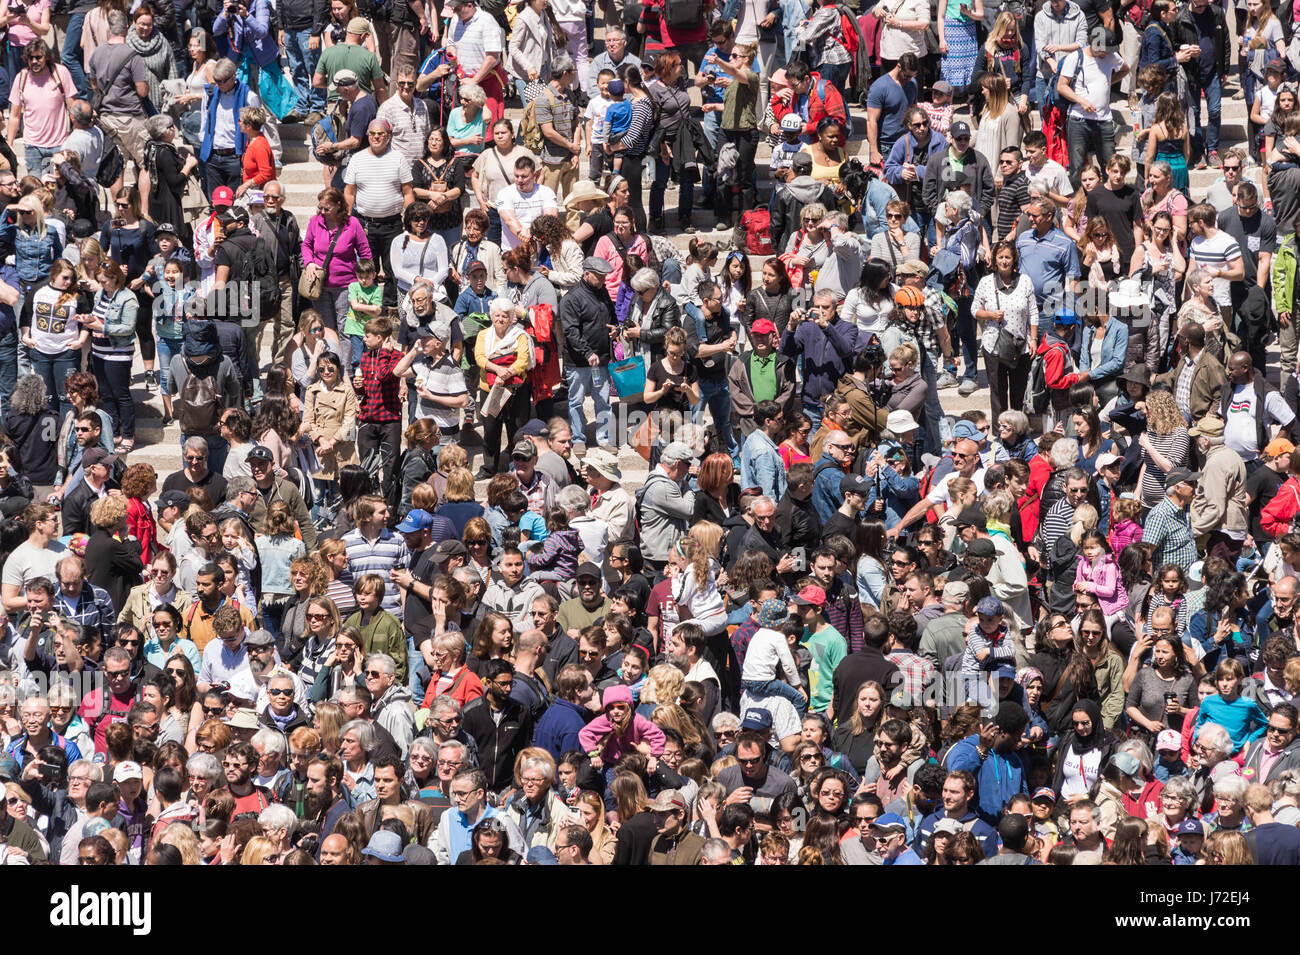 Montreal, CA - 20 May 2017: Crowd on Place des Arts during Royal de Luxe show - Stock Image